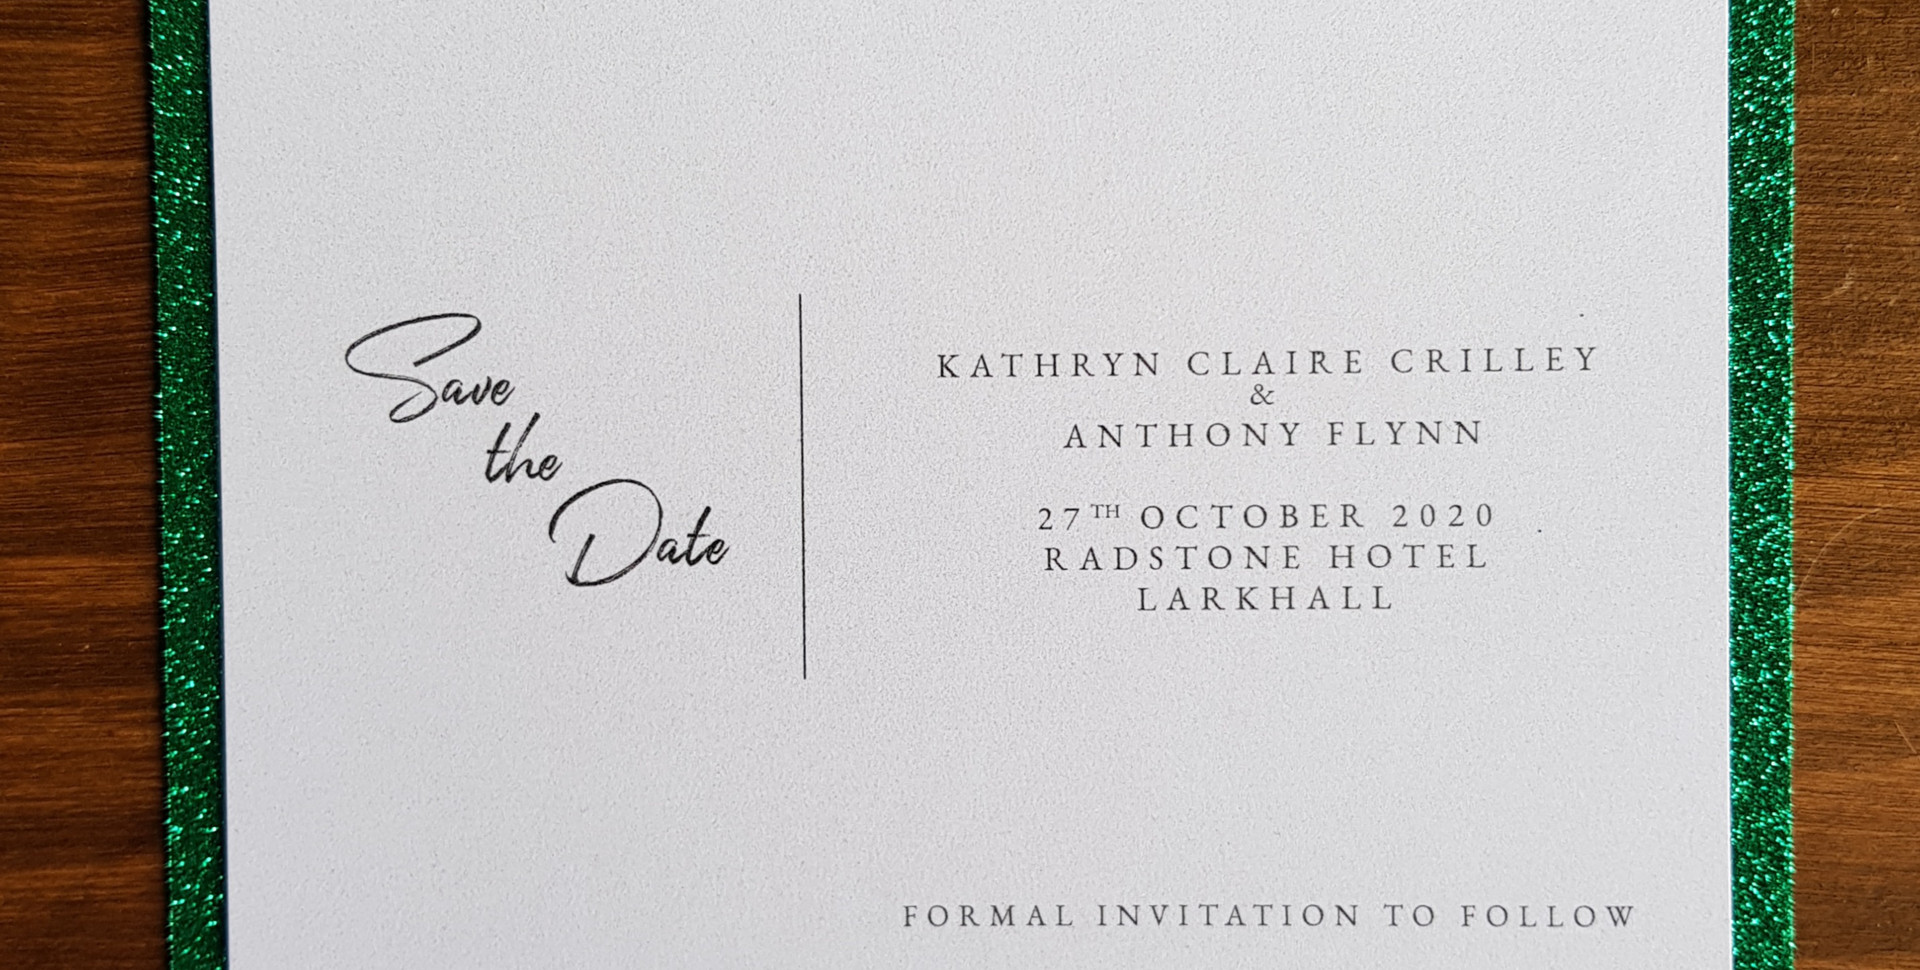 Kathryn - Save the date